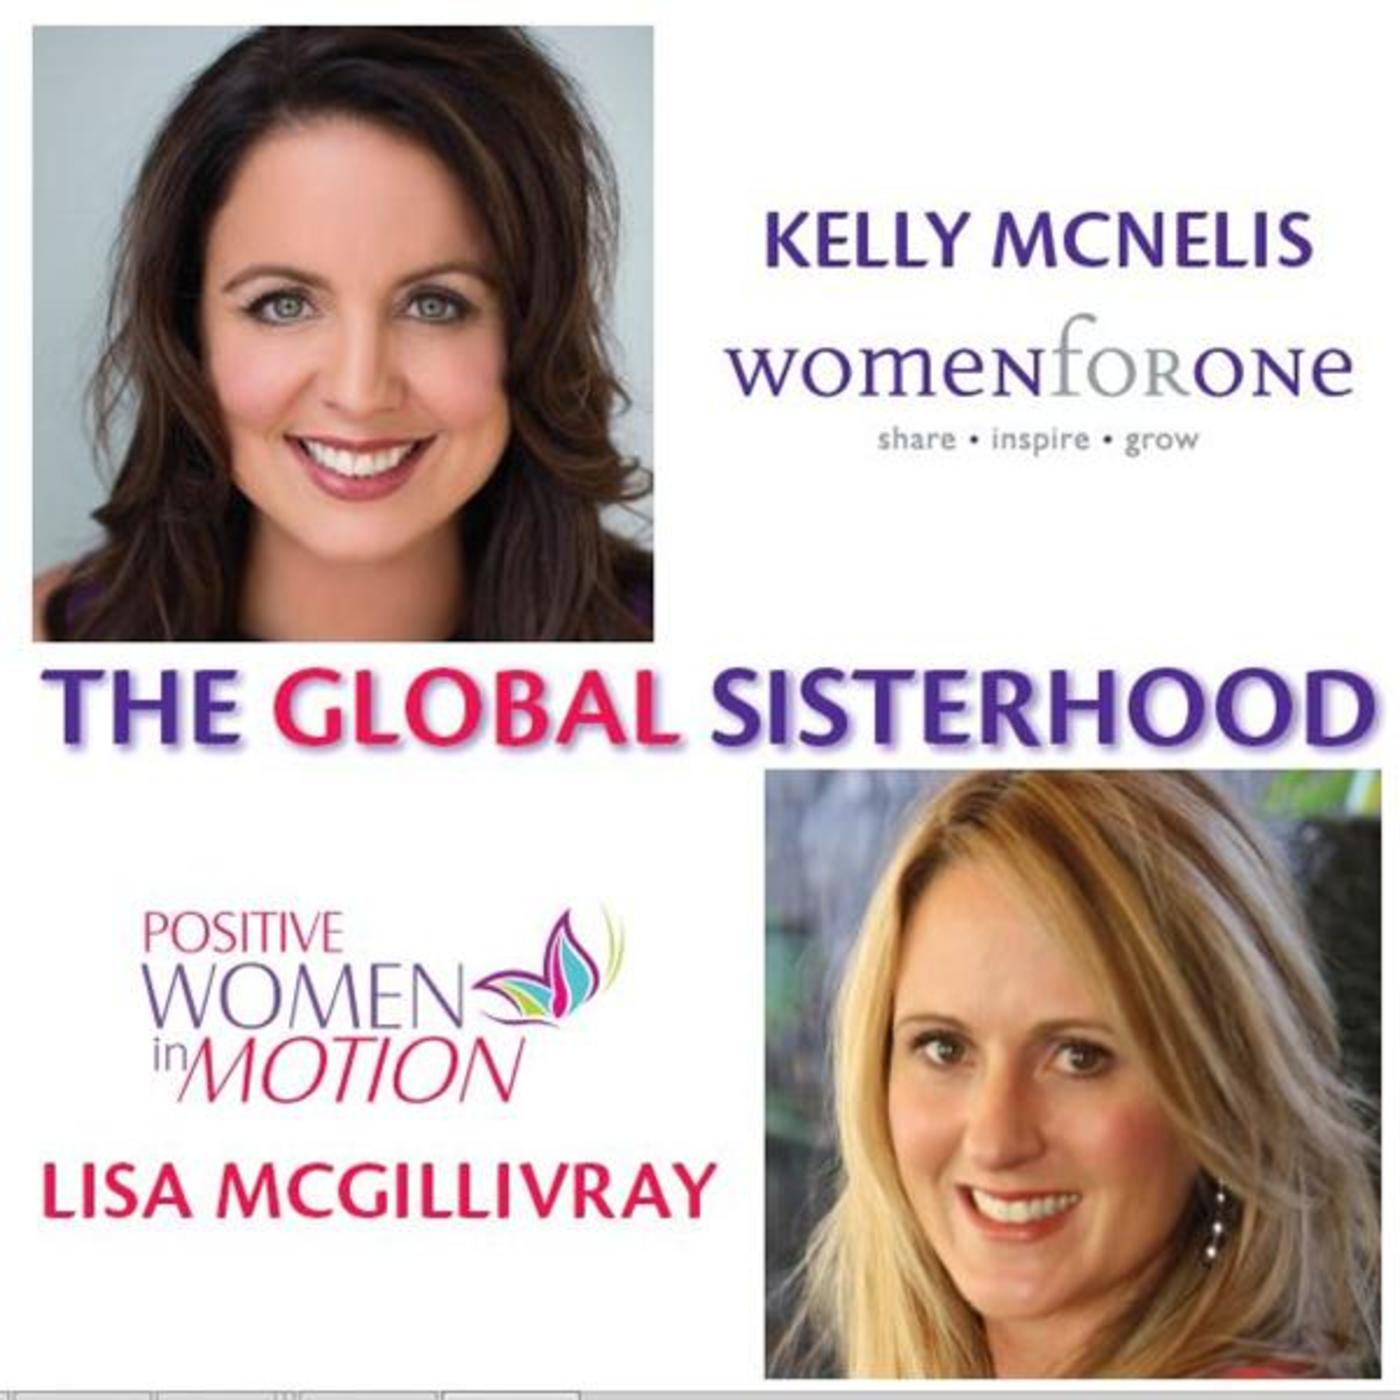 The Global Sisterhood